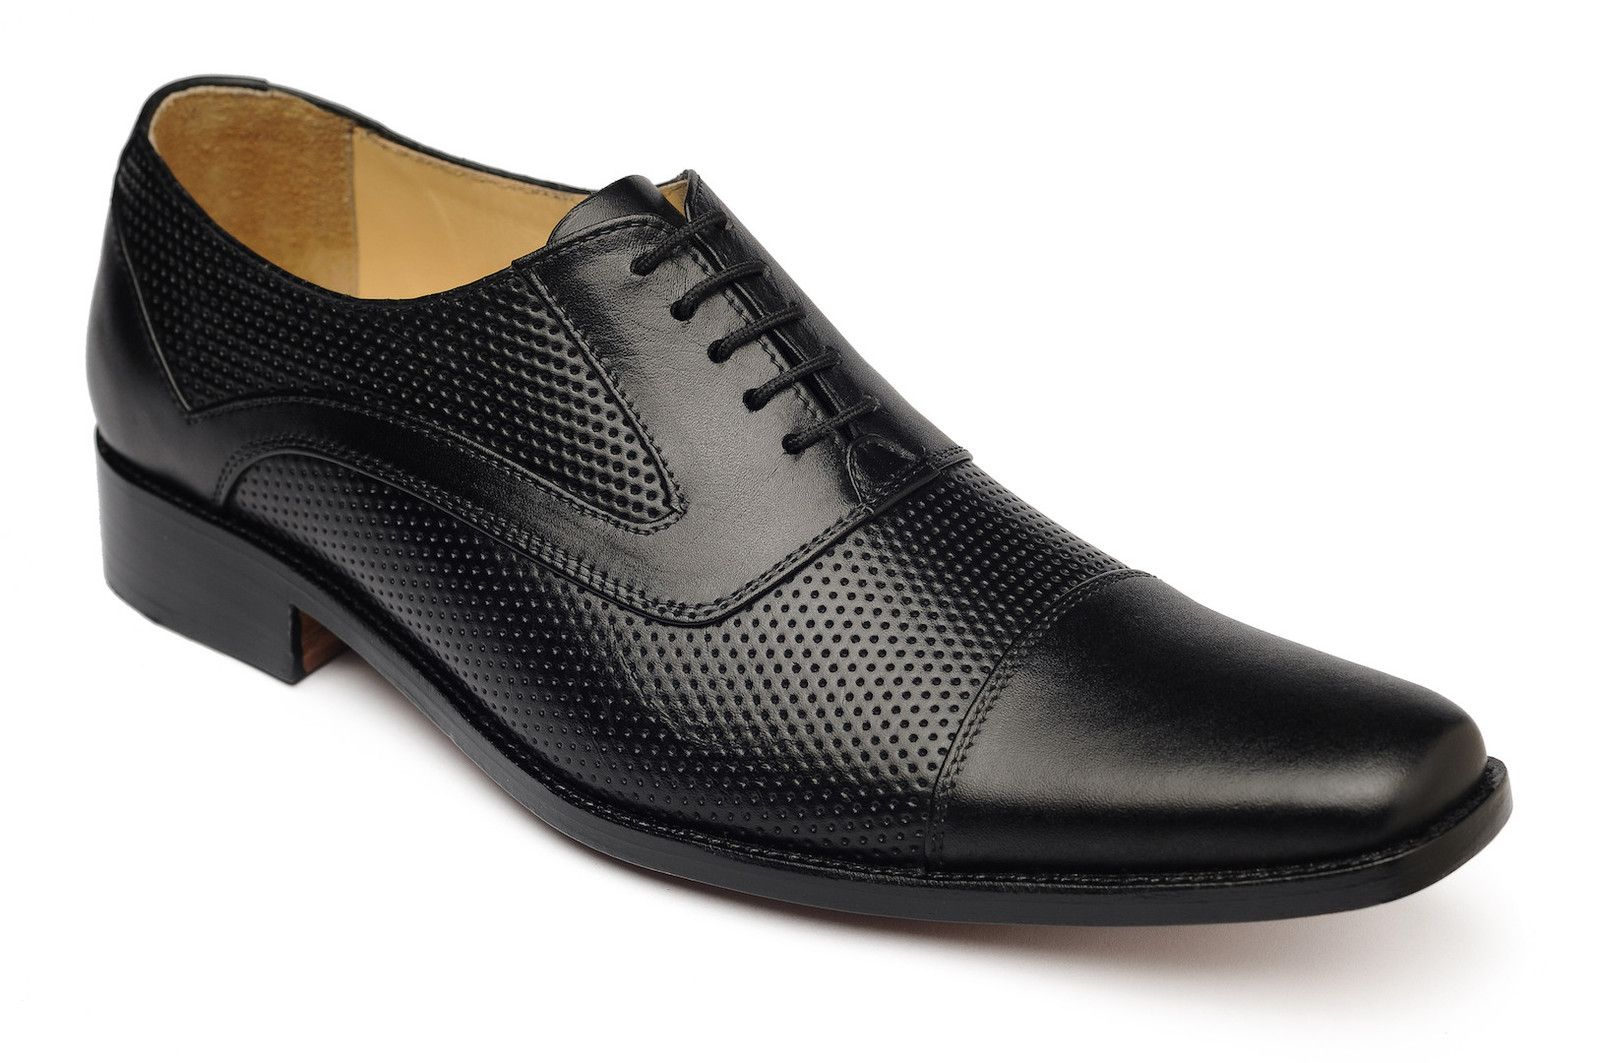 Perforated Leather Wingtips Breathable Dress Shoes Mens Black Dress Shoes Perforated Shoes Casual Dress Shoes [ 1063 x 1600 Pixel ]